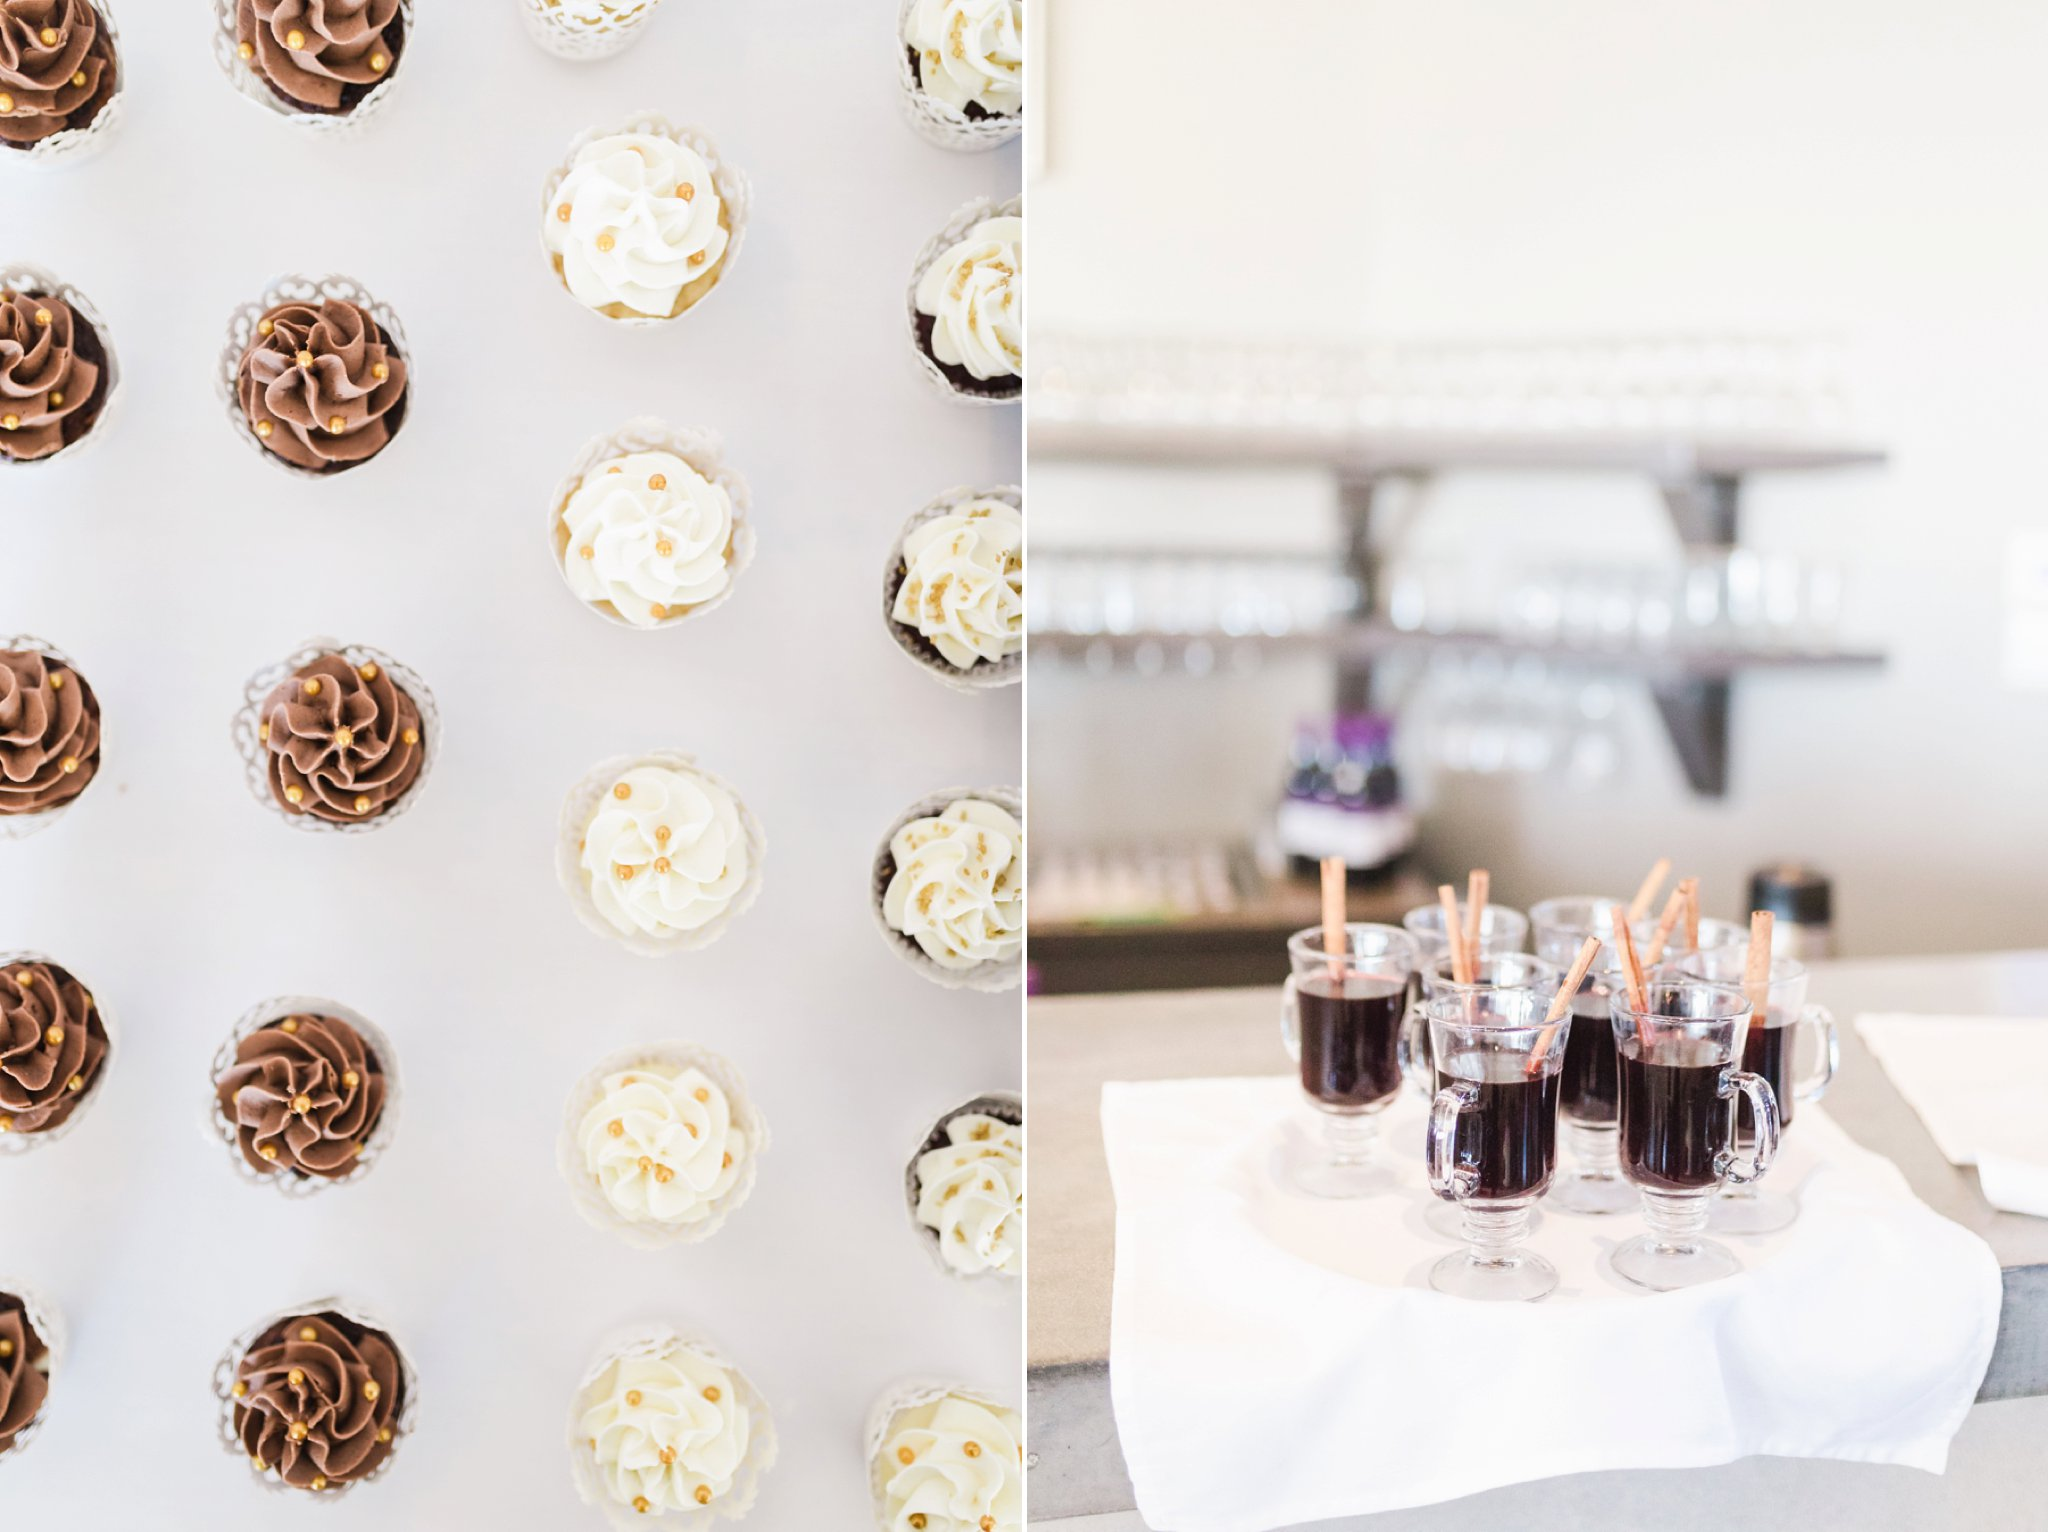 Cupcakes and hot toddy at the Winter wedding at Le Belvedere